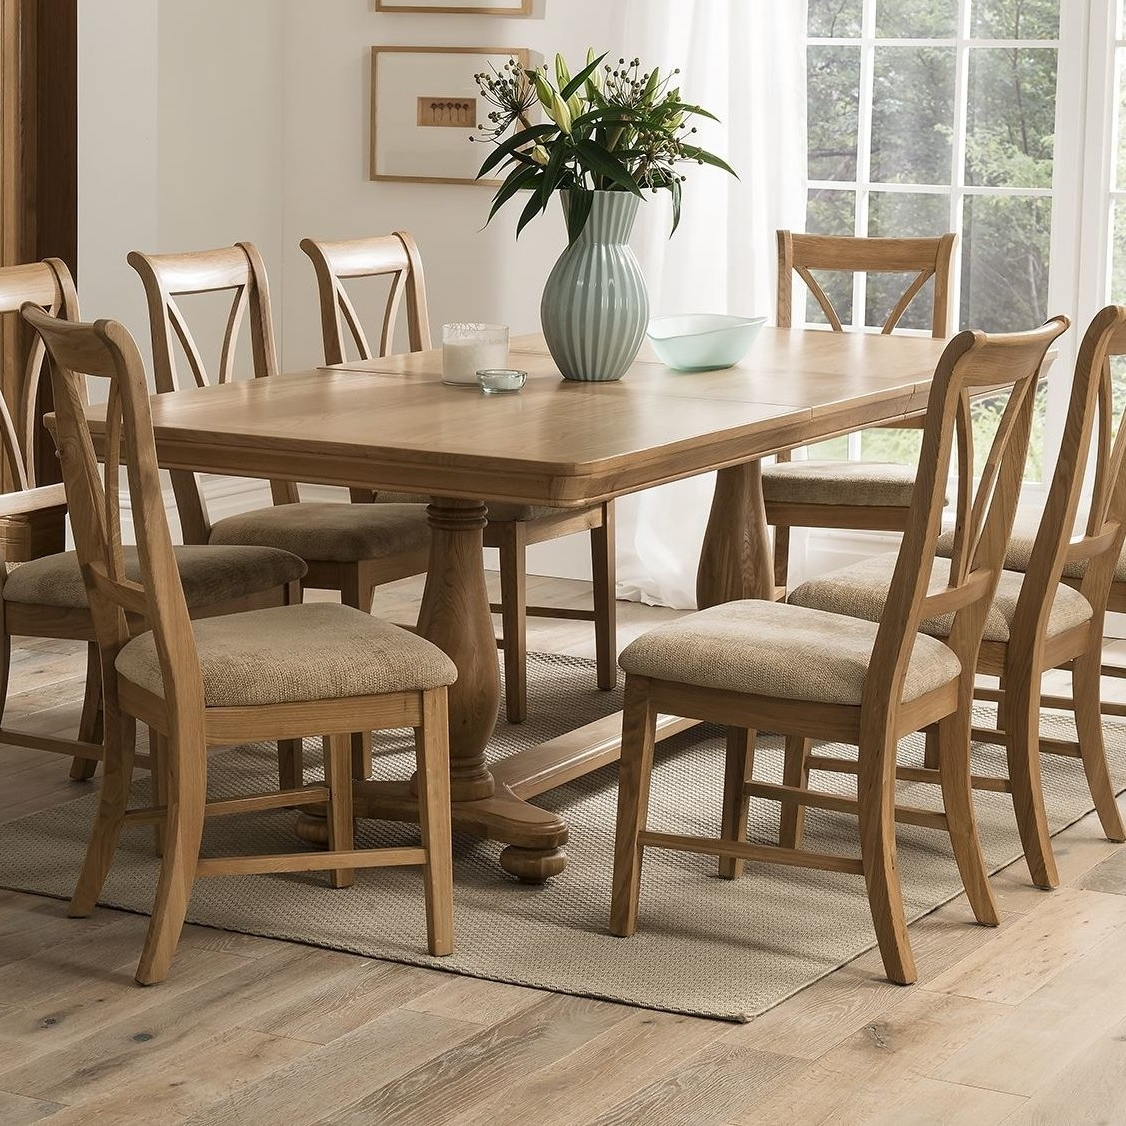 Widely Used Homestead Living Rowan Extendable Dining Table And 6 Chairs Inside Extendable Dining Tables 6 Chairs (View 6 of 25)